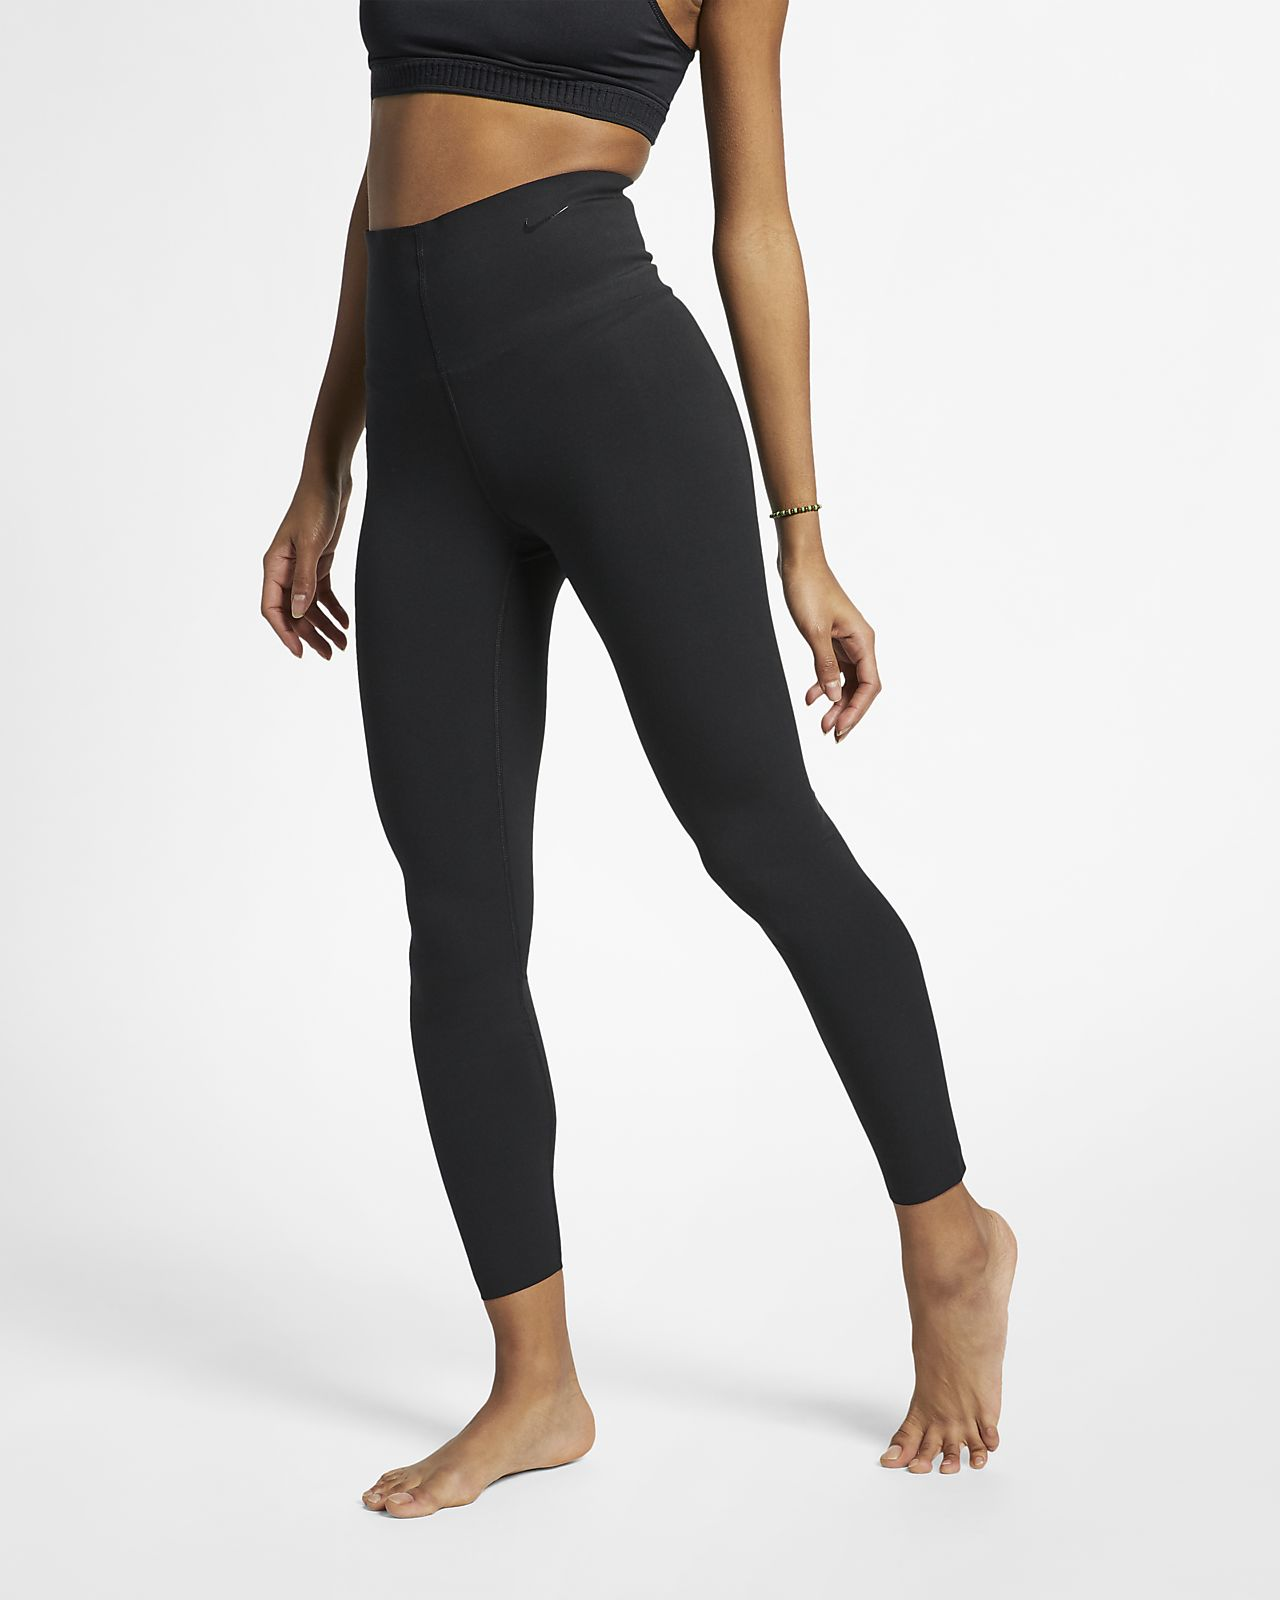 9bafbbb8c09ee Nike Sculpt Lux Women's 7/8 Yoga Tights. Nike.com AU